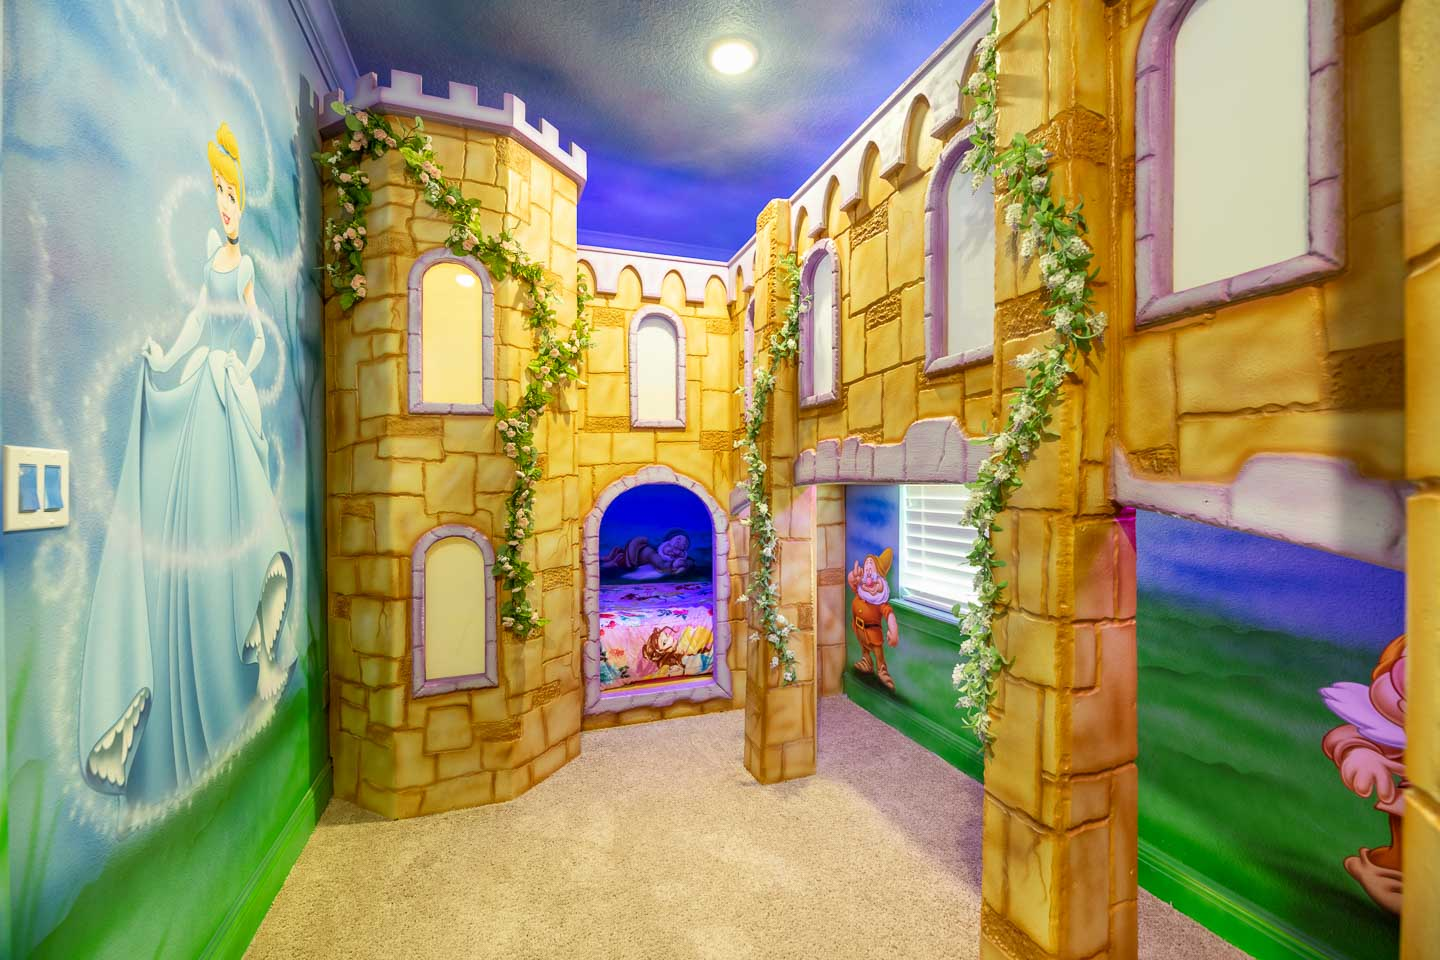 [amenities:themed-bedrooms:2] Themed Bedrooms